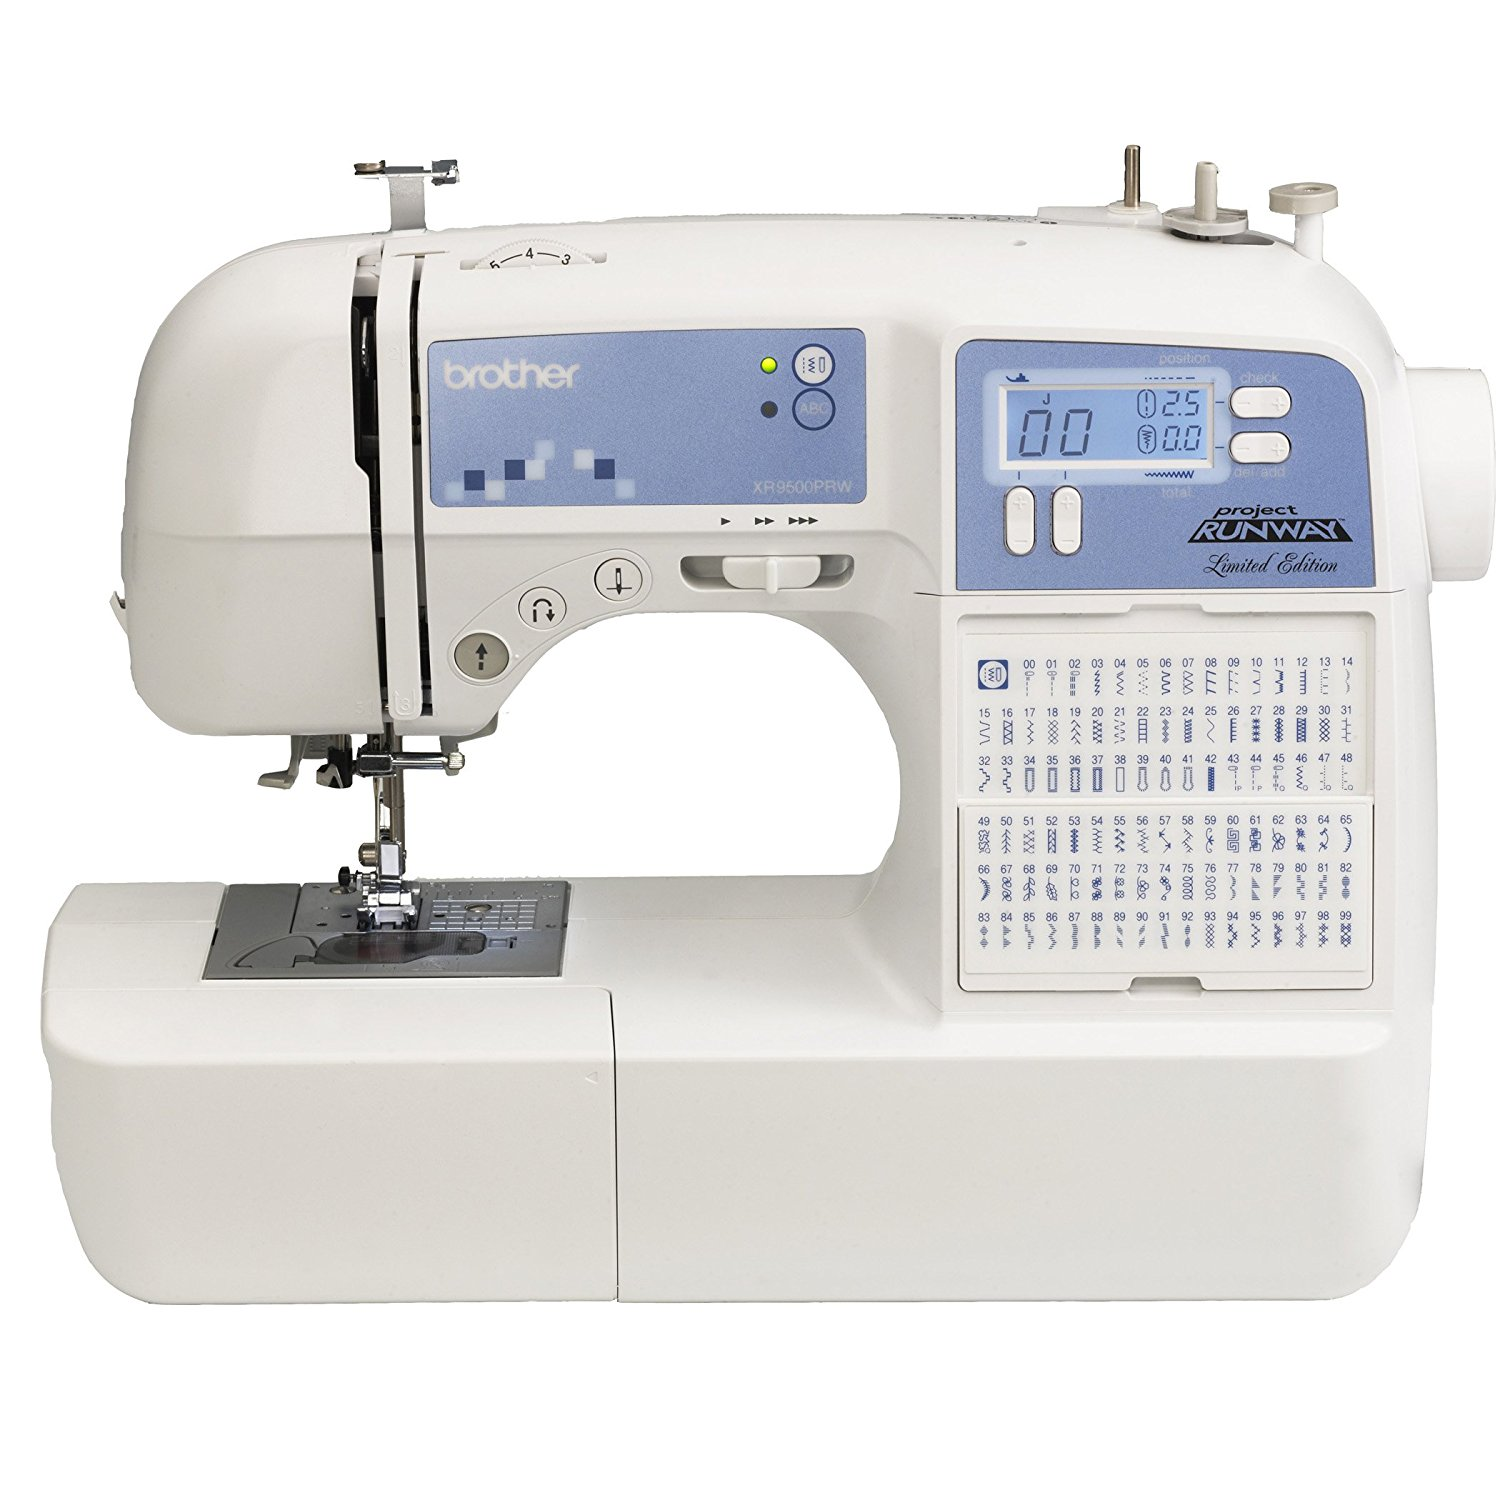 prime deal  brother project runway limited edition sewing machine only  121 23